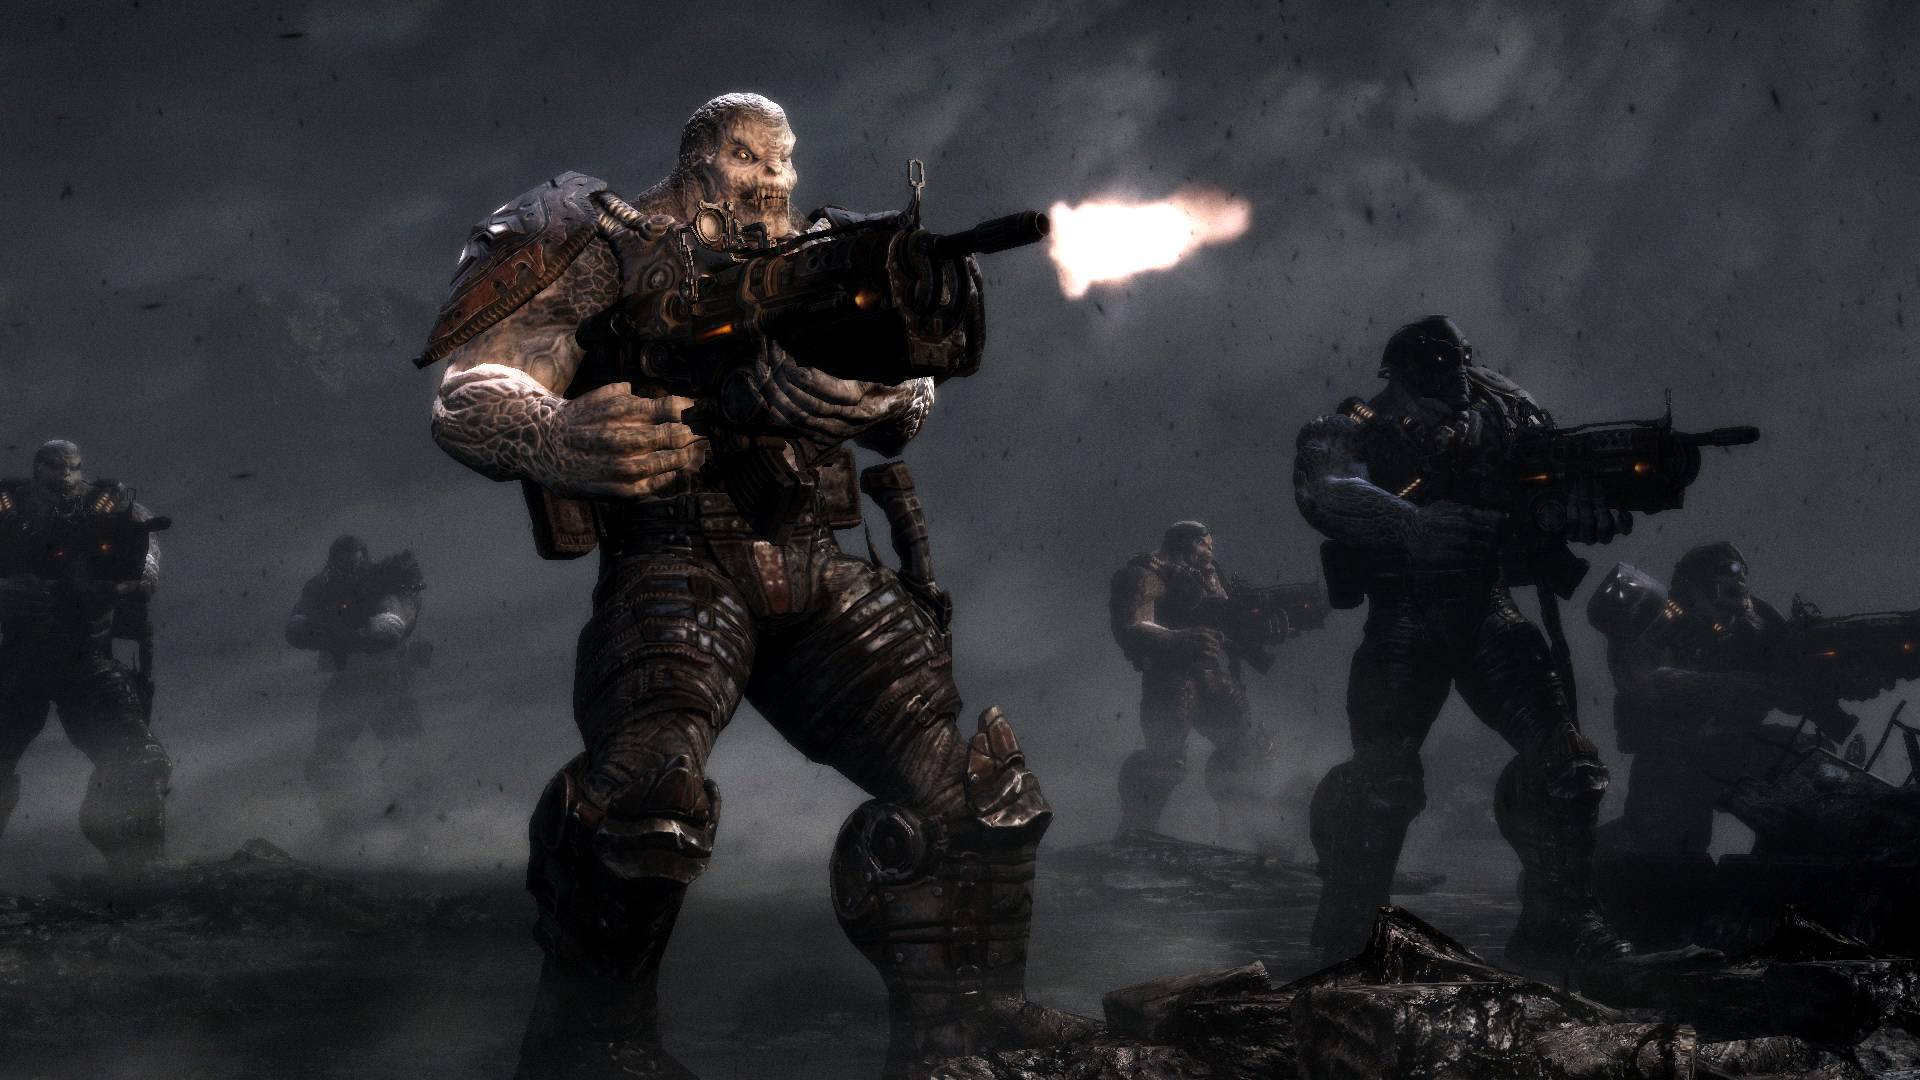 Gears Of War Wallpaper 1920x1080 38592